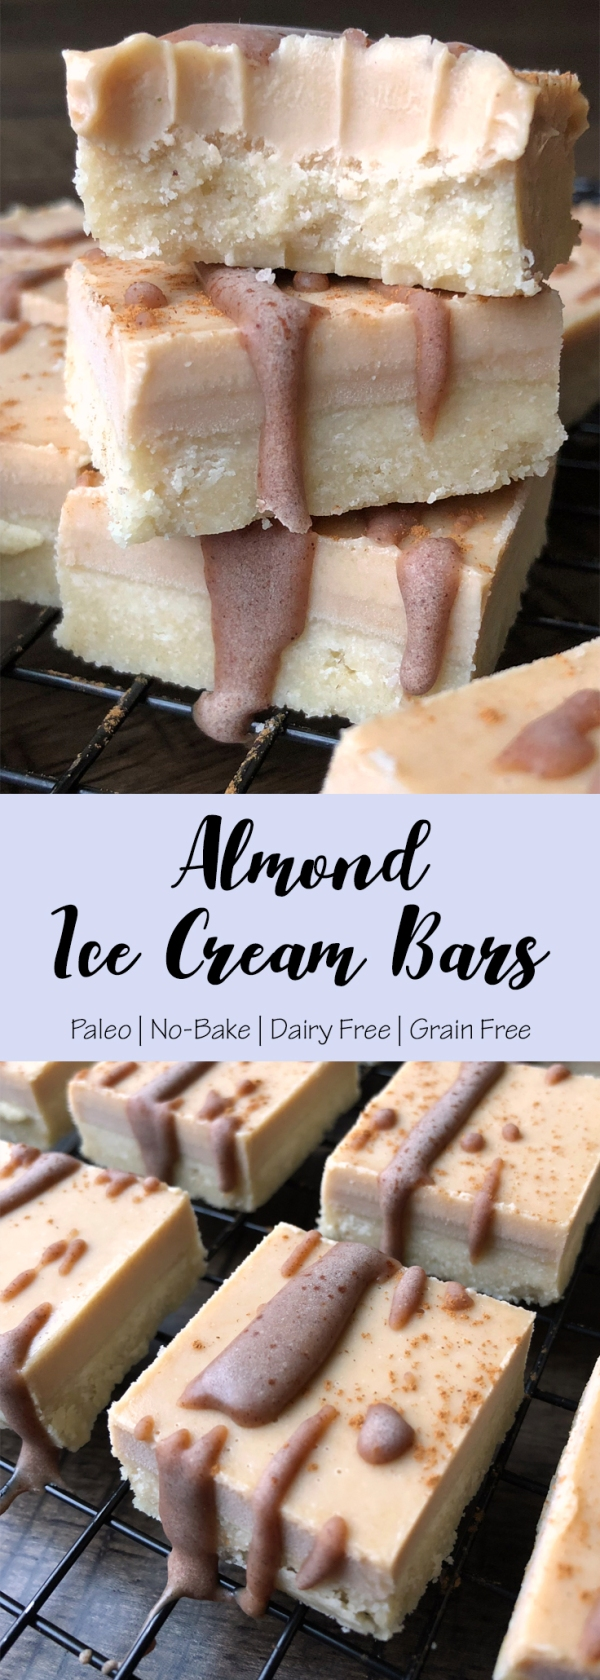 Almond Ice Cream Bars